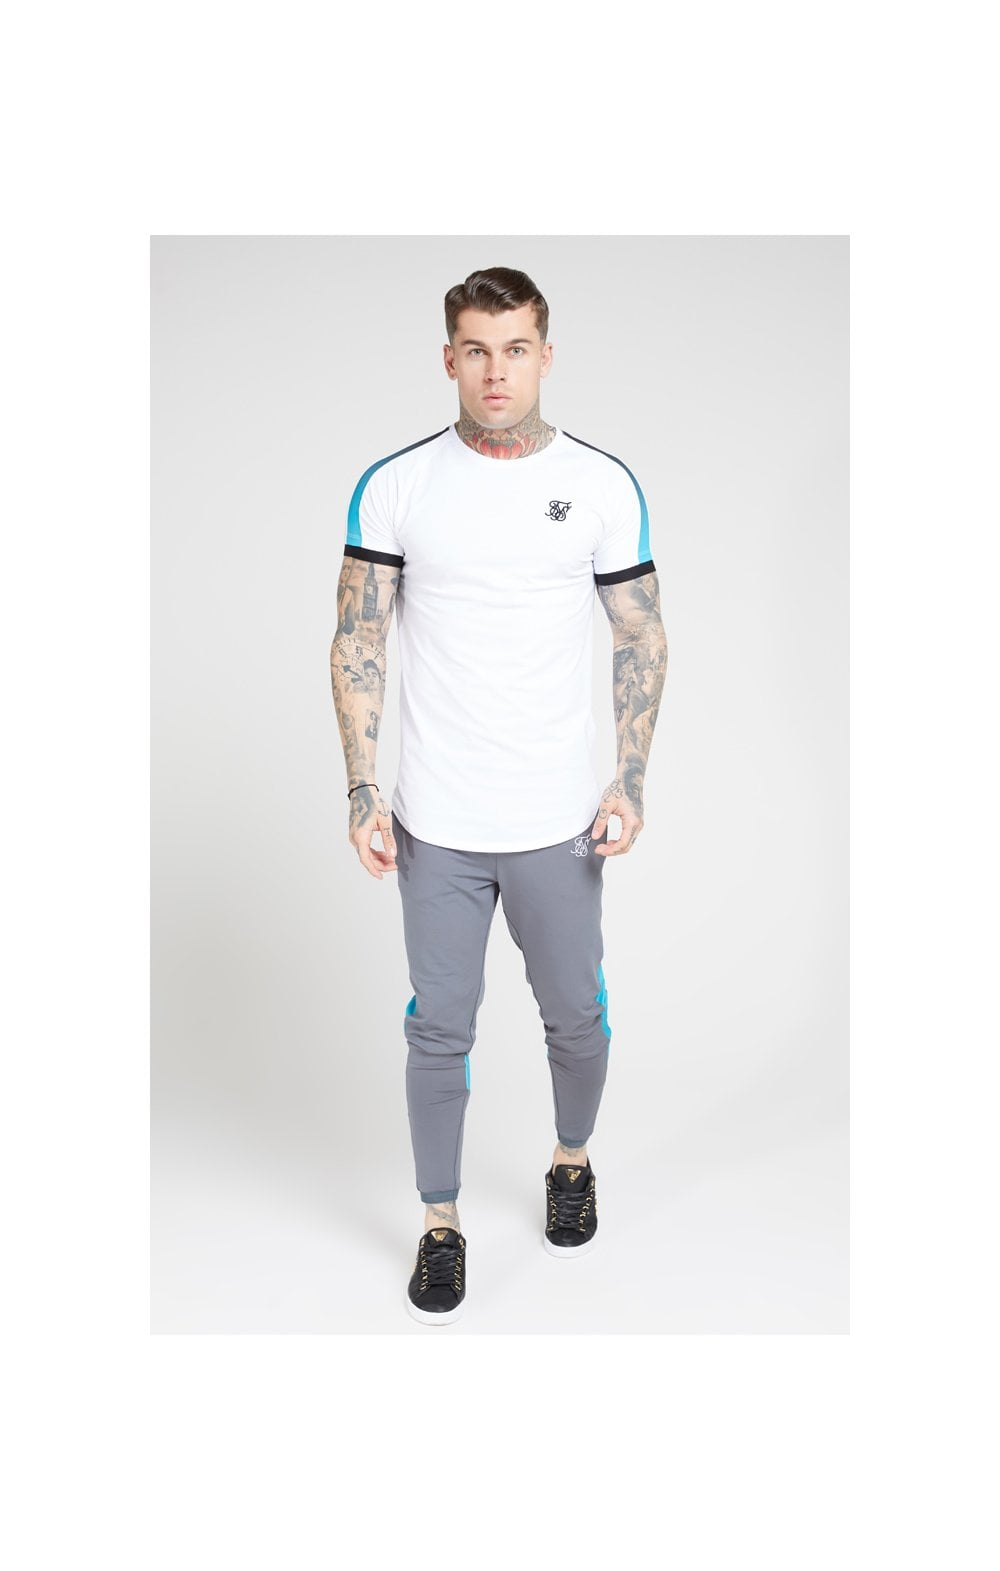 SikSilk S/S Inset Cuff Fade Panel Tech Tee – White, Black & Teal (2)